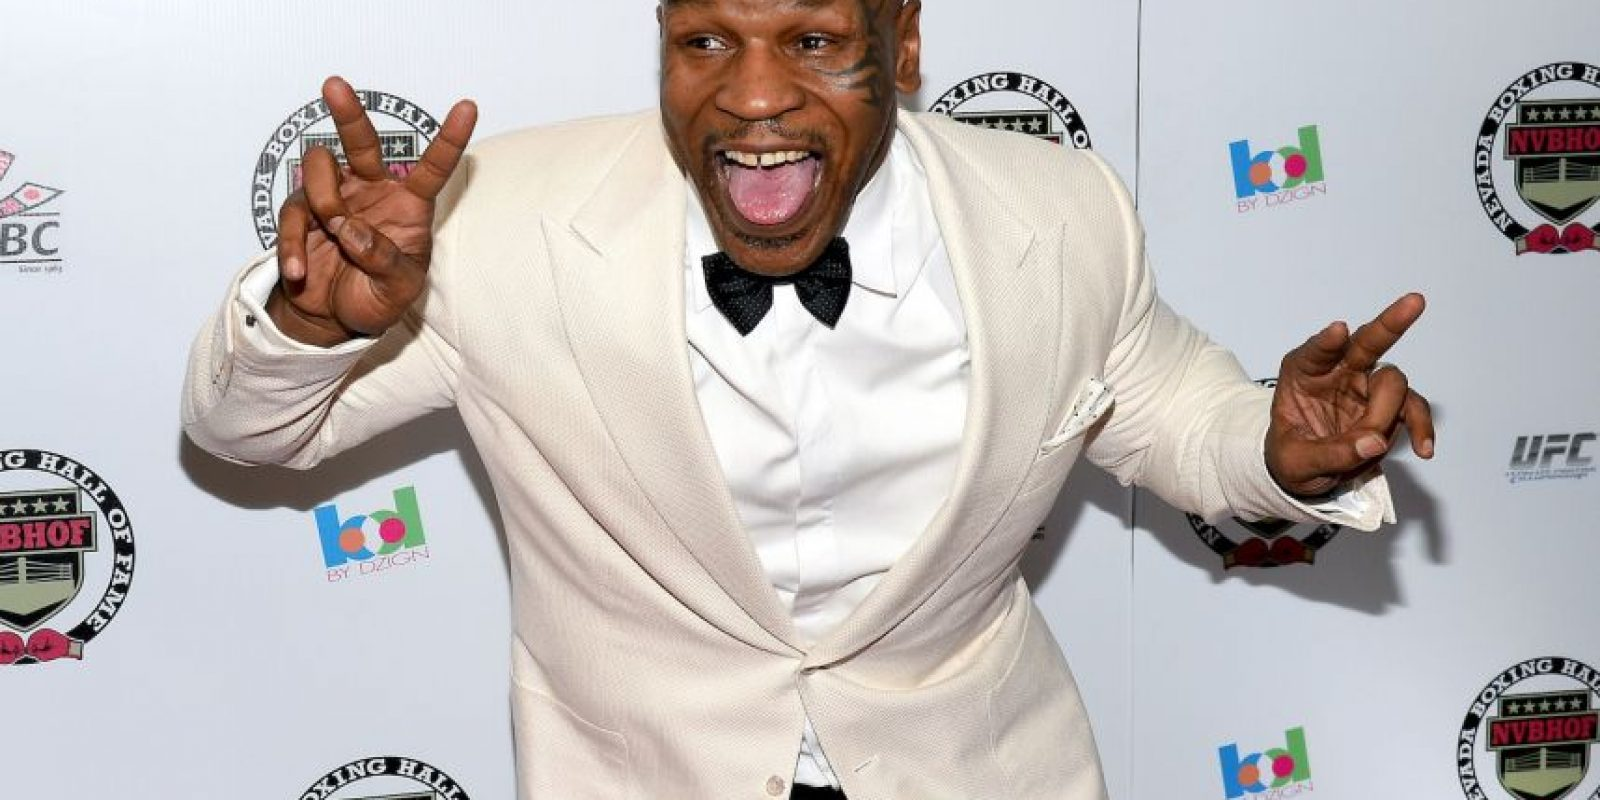 2. Mike Tyson Foto: Getty Images